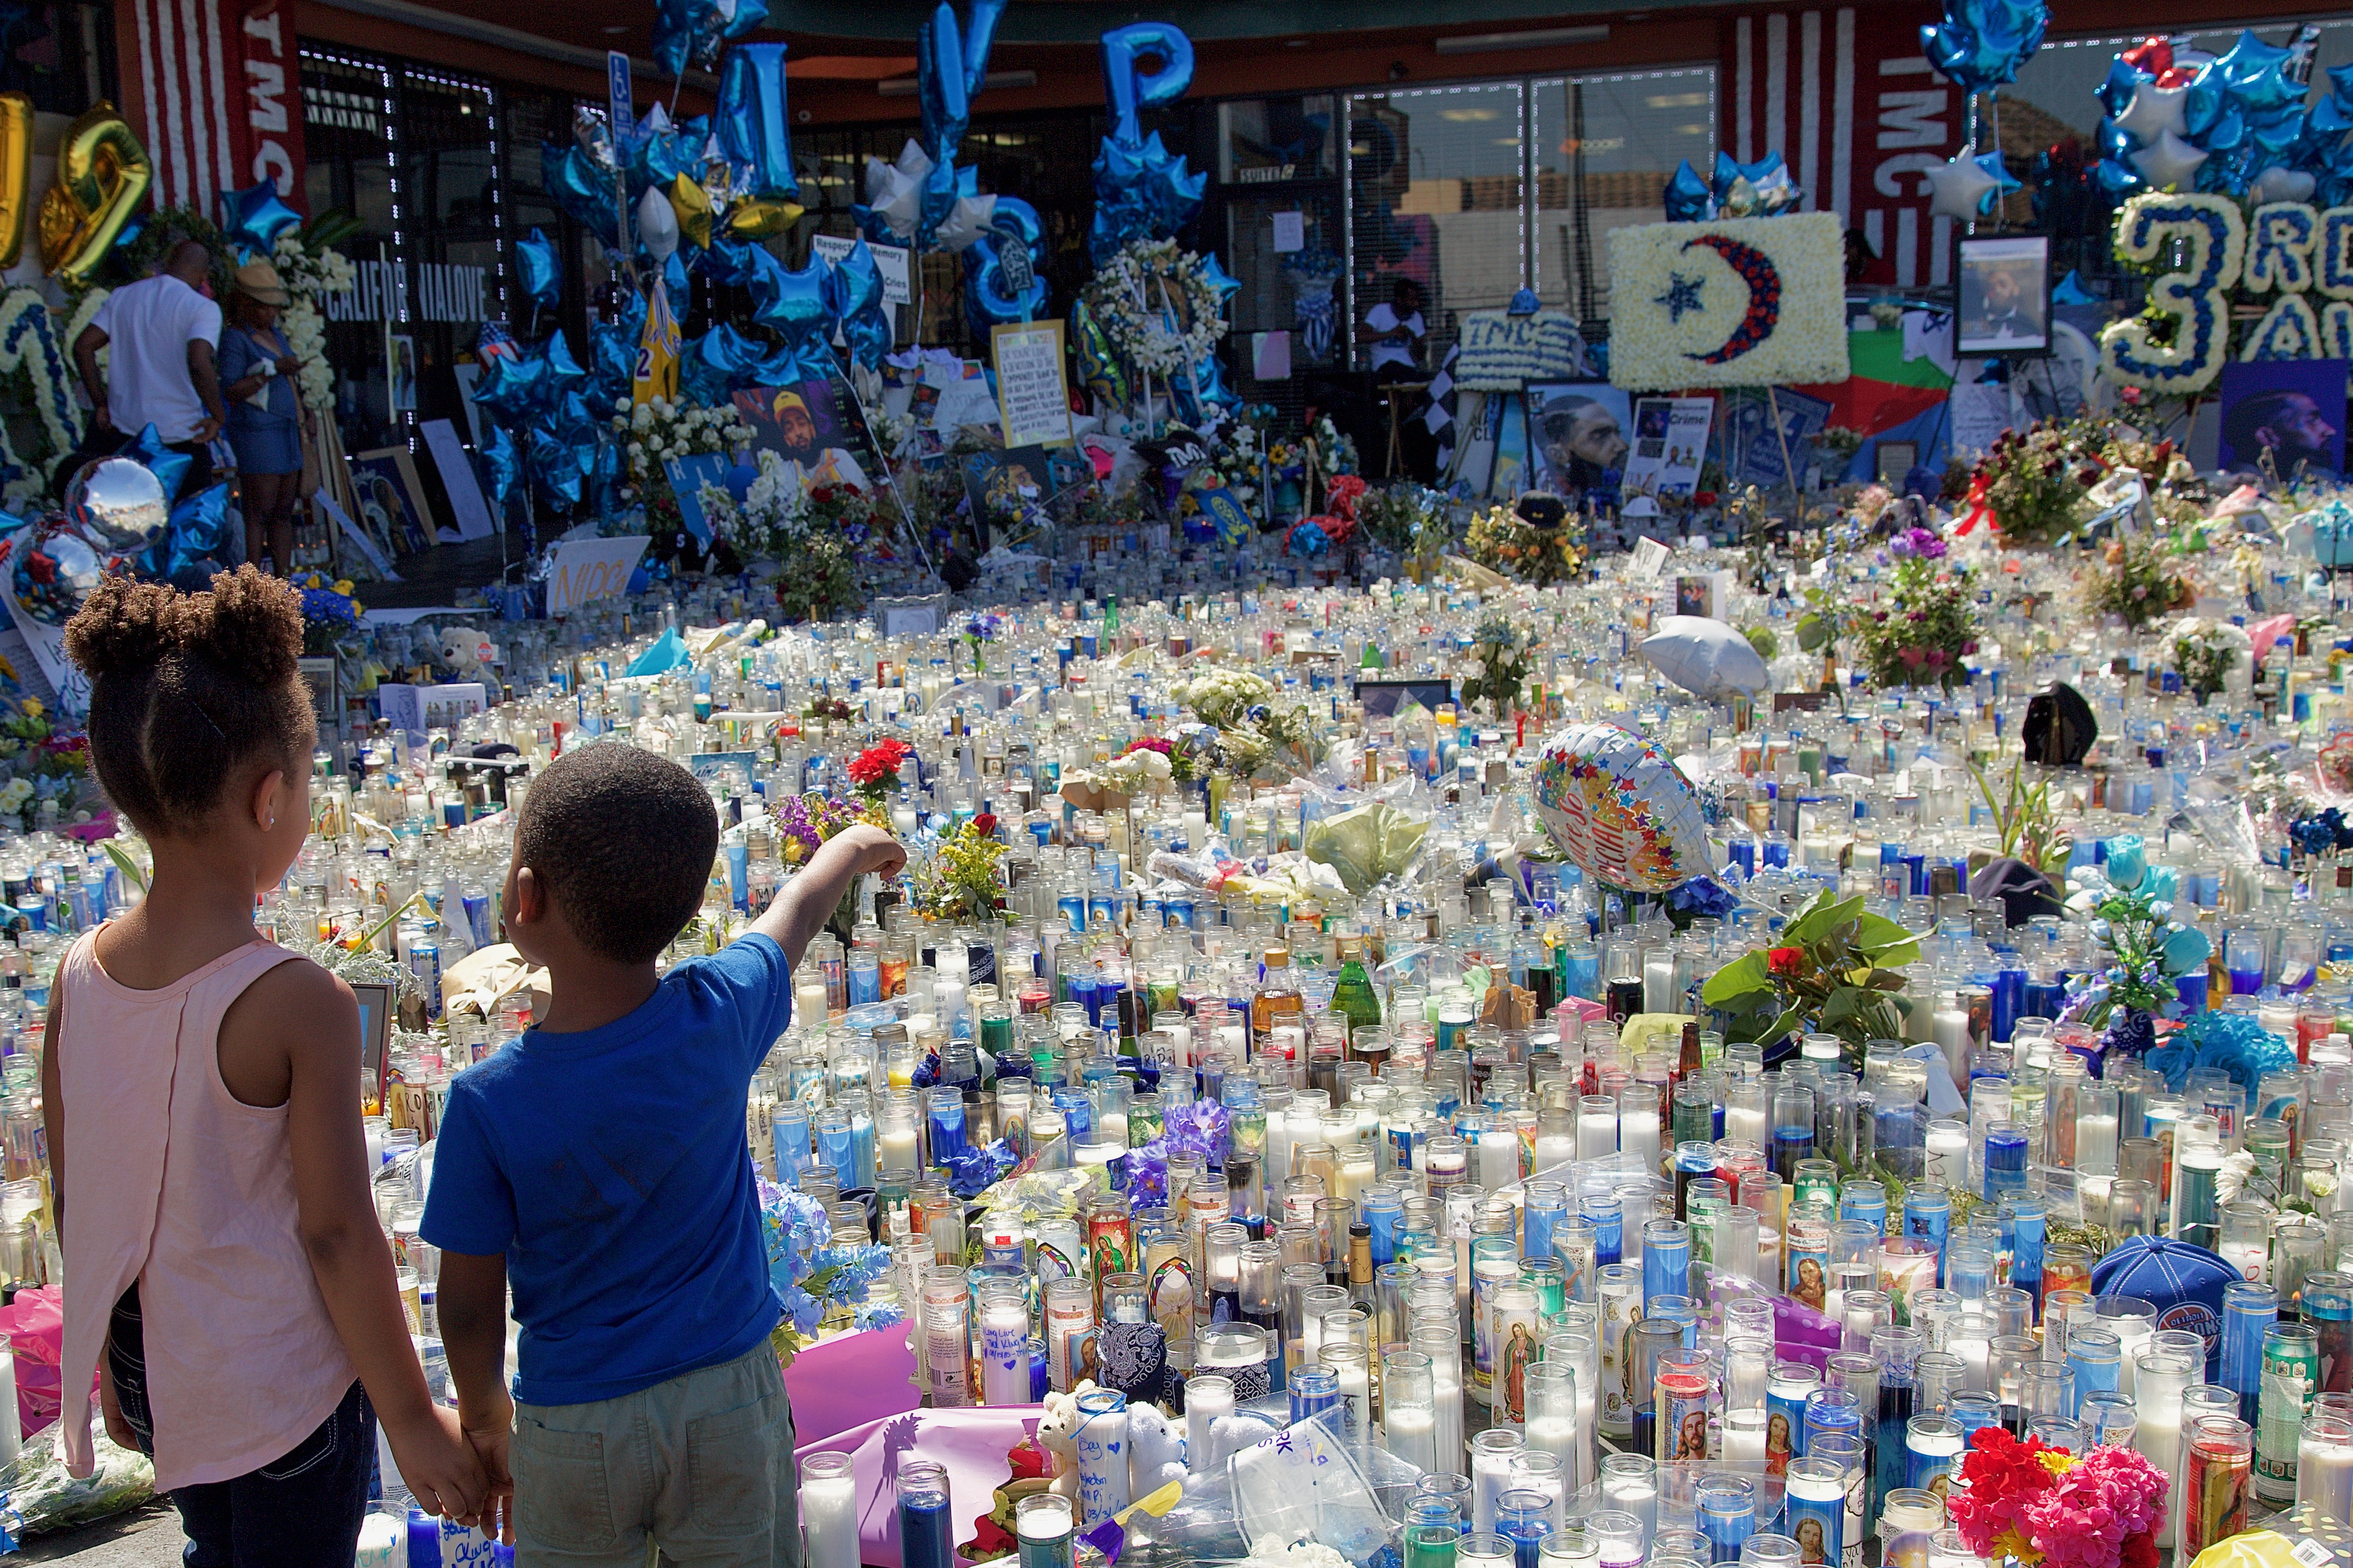 The memorial to Nipsey Hussle sits in front of The Marathon store in the strip mall where he spent much of his life and where he worked to uplift the community. He died here March 31. Sahra Sulaiman/Streetsblog L.A.